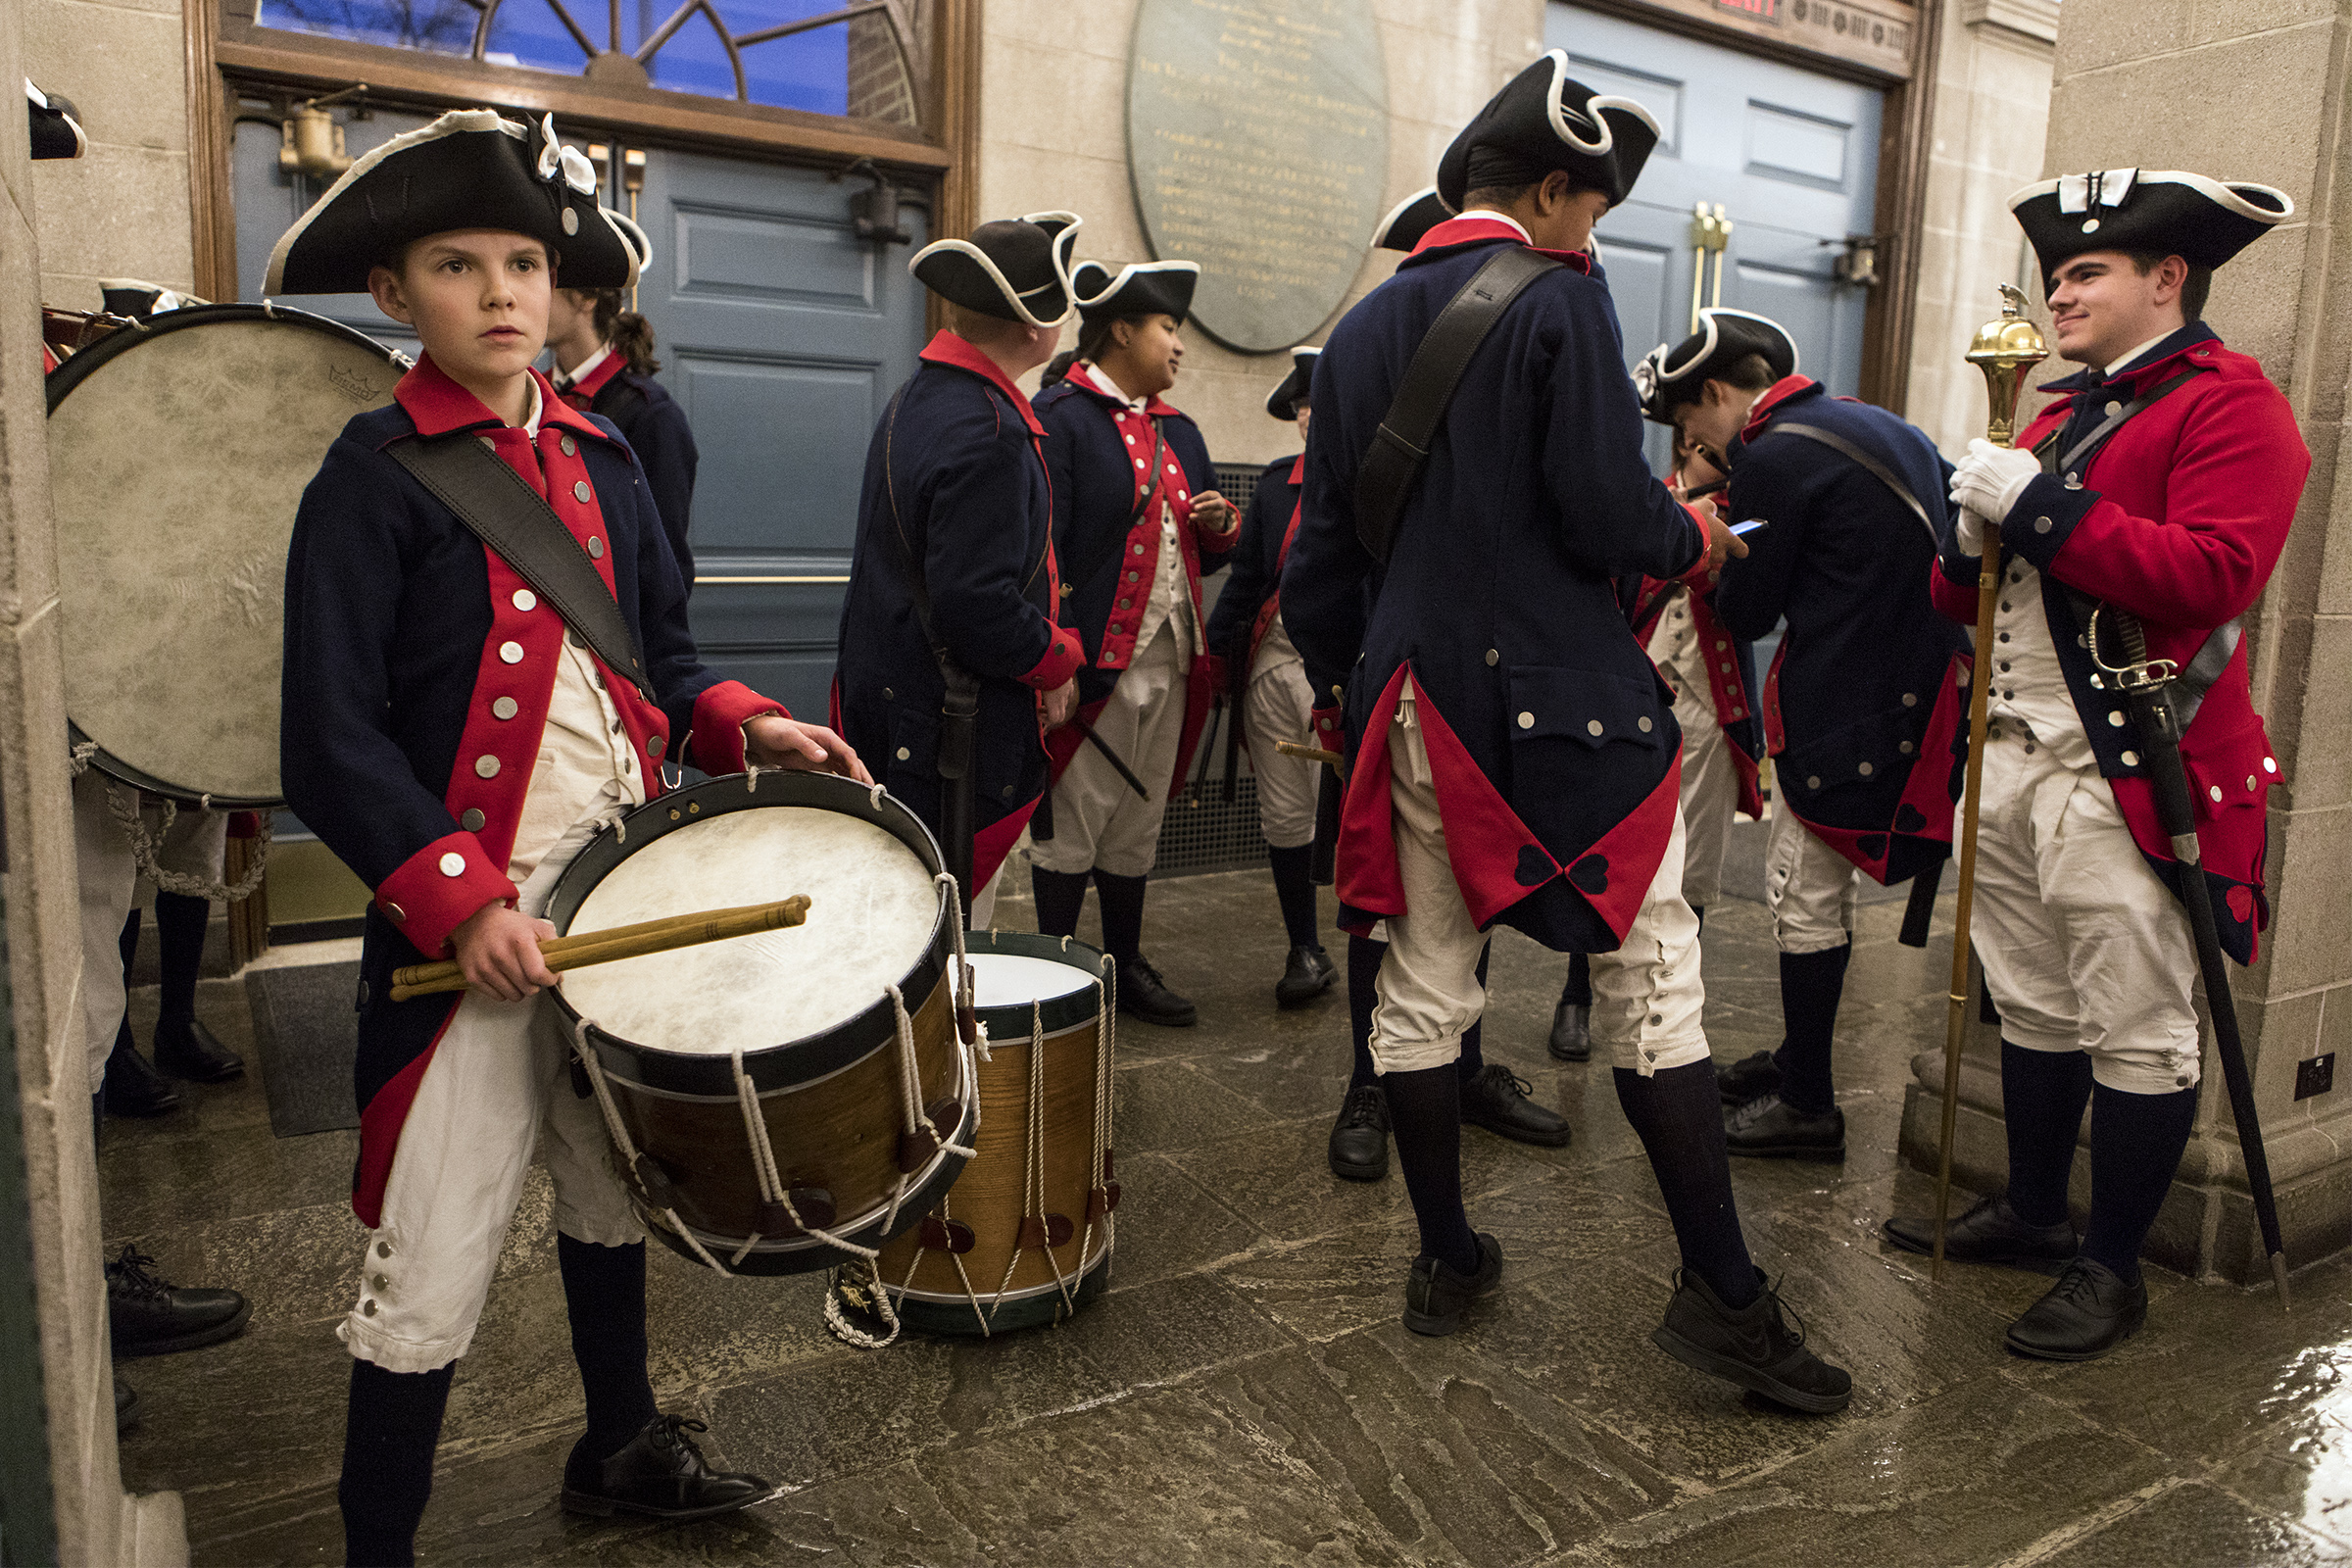 Emory Carroll, of Bedford, left, prepares to march with the William Diamond Junior Fife and Drum Corps before the annual Town Meeting at the Cary Memorial Building in Lexington on March 25, 2019